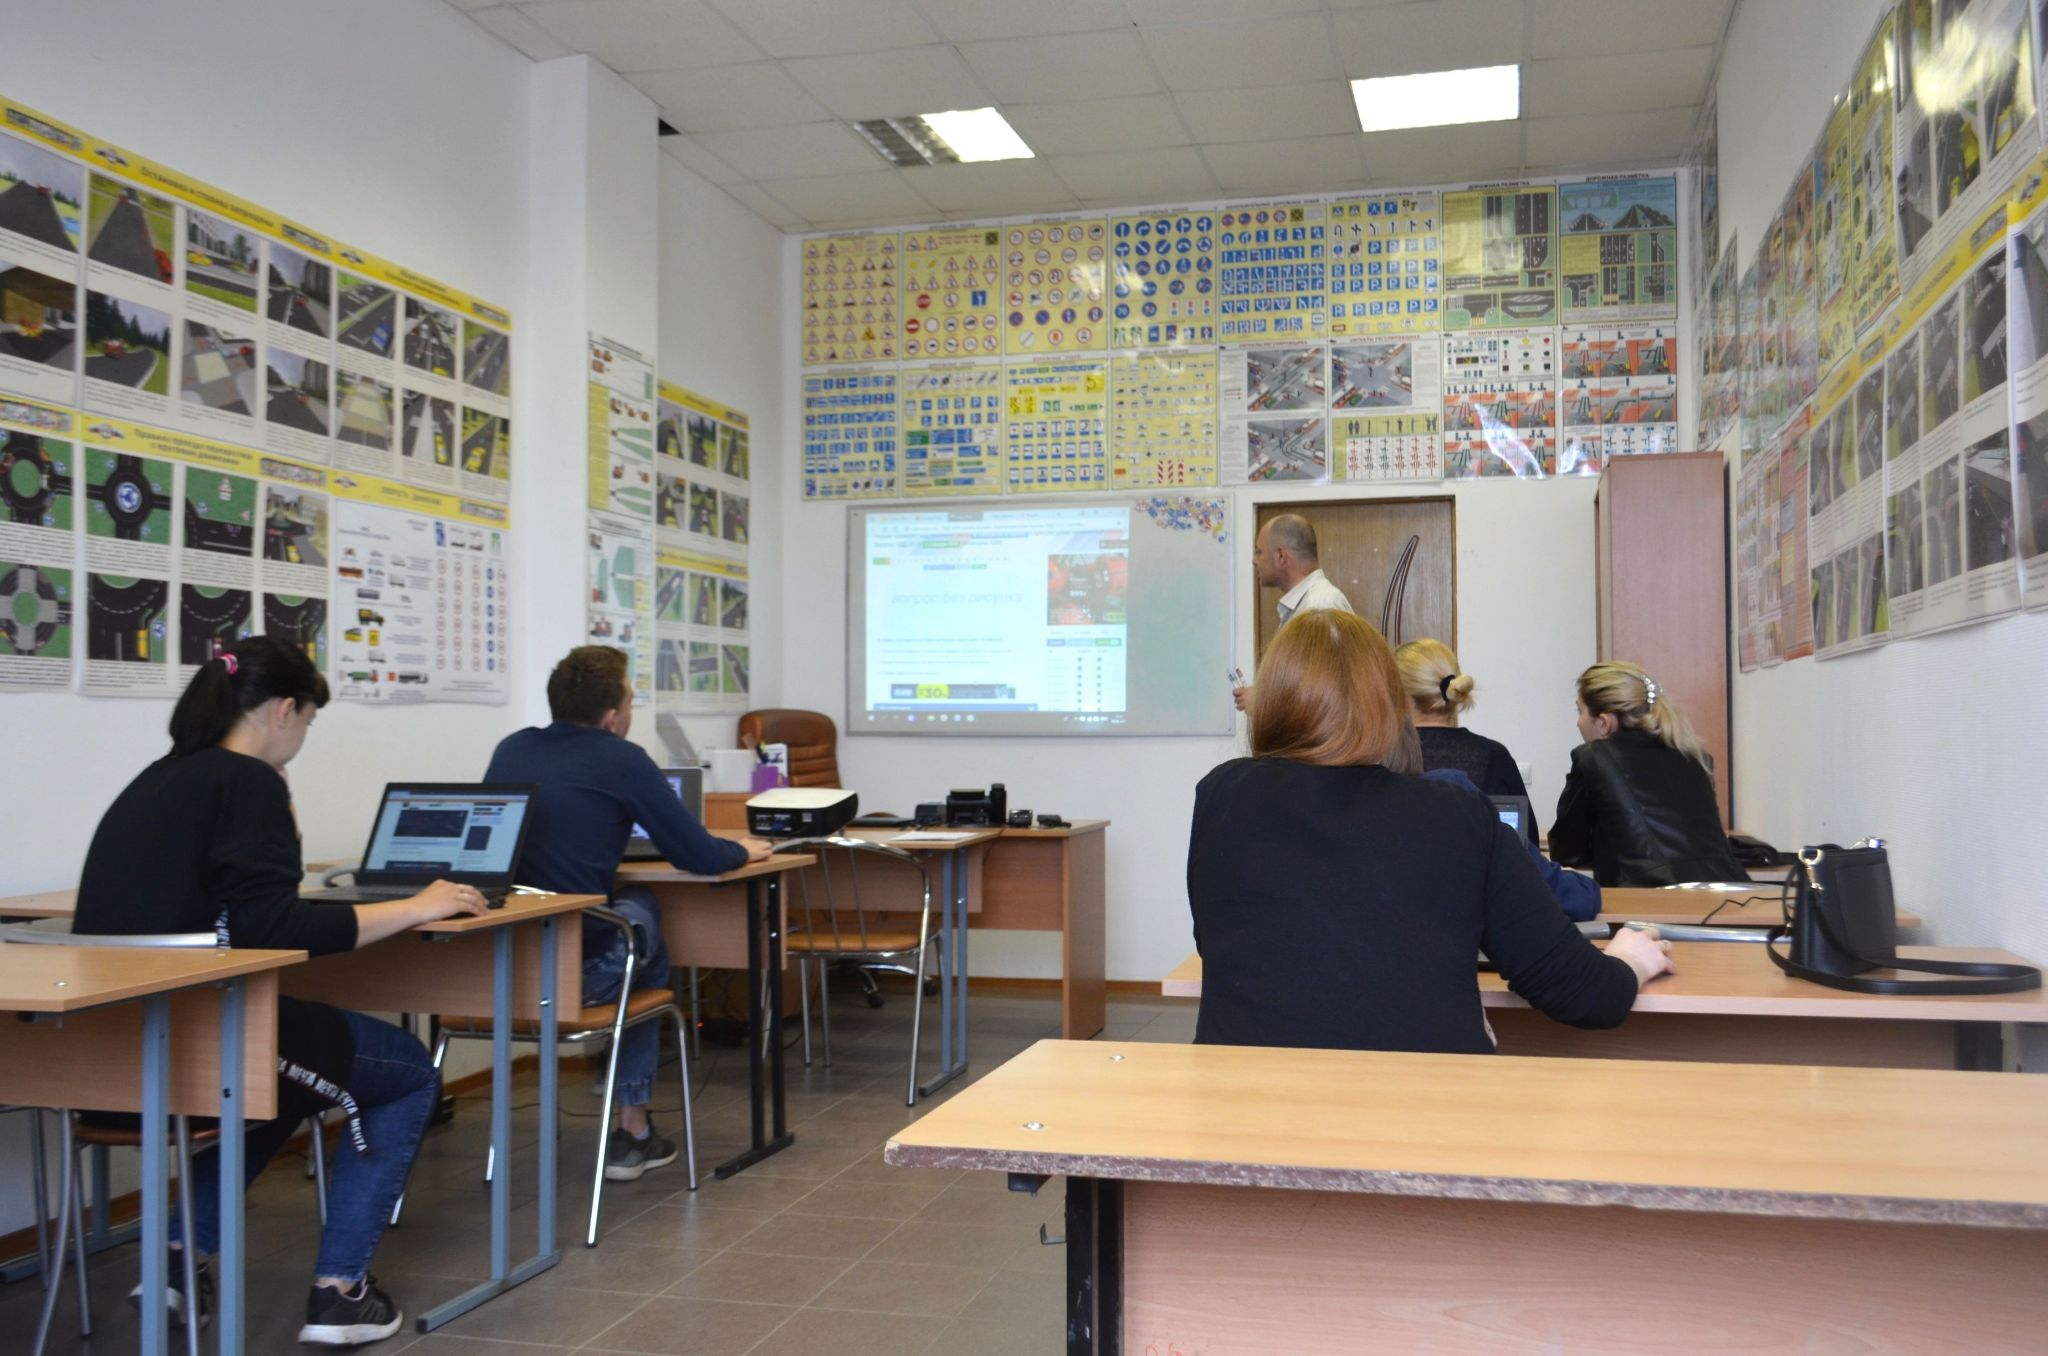 Setting the tone in the classroom - creating the right display and visual environment.